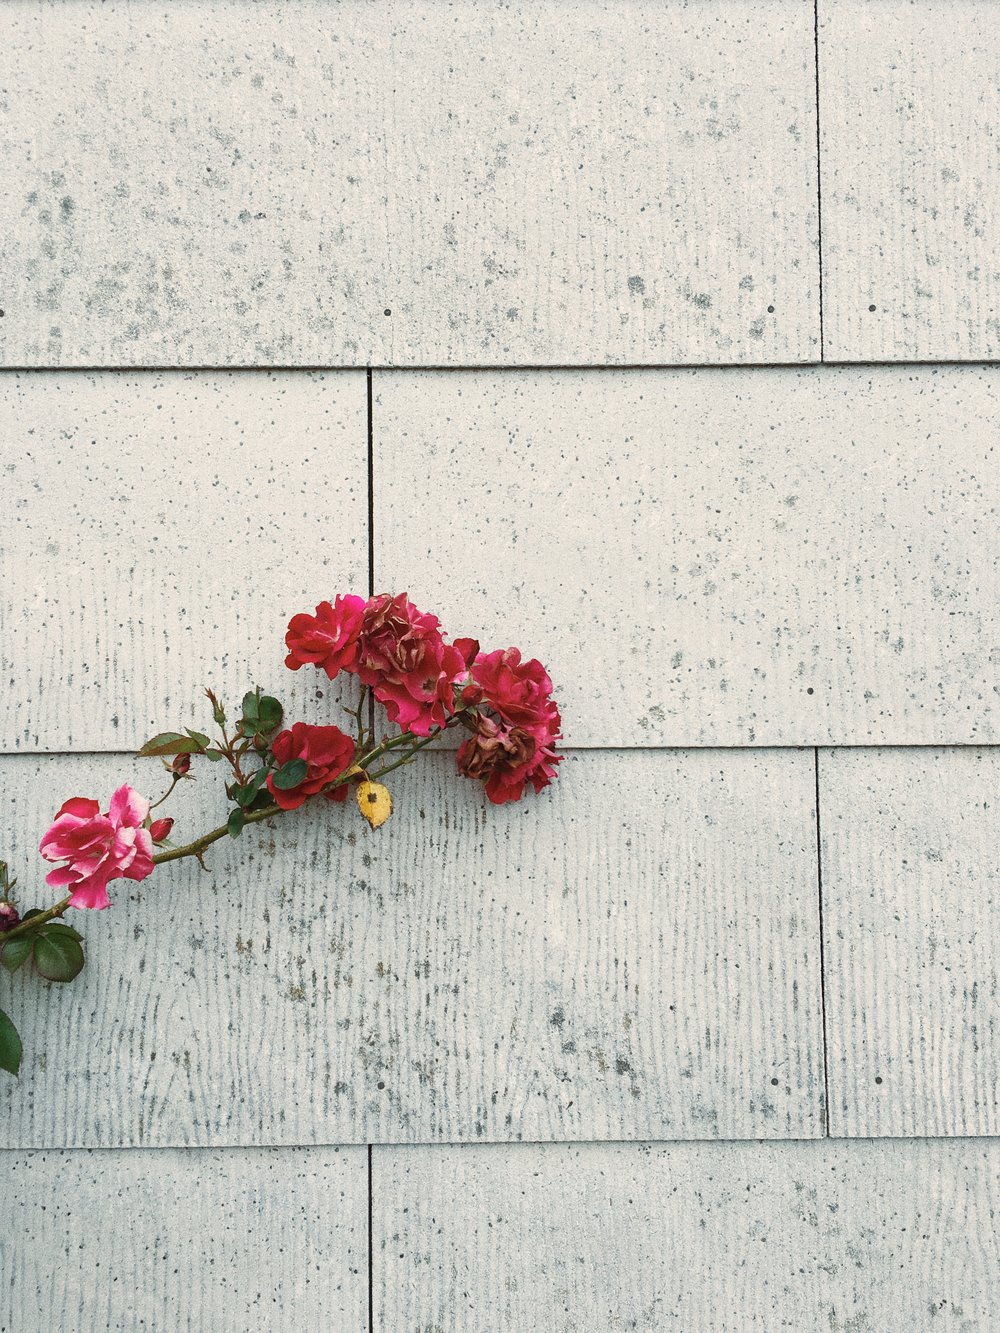 flower on wall fort bragg.JPG